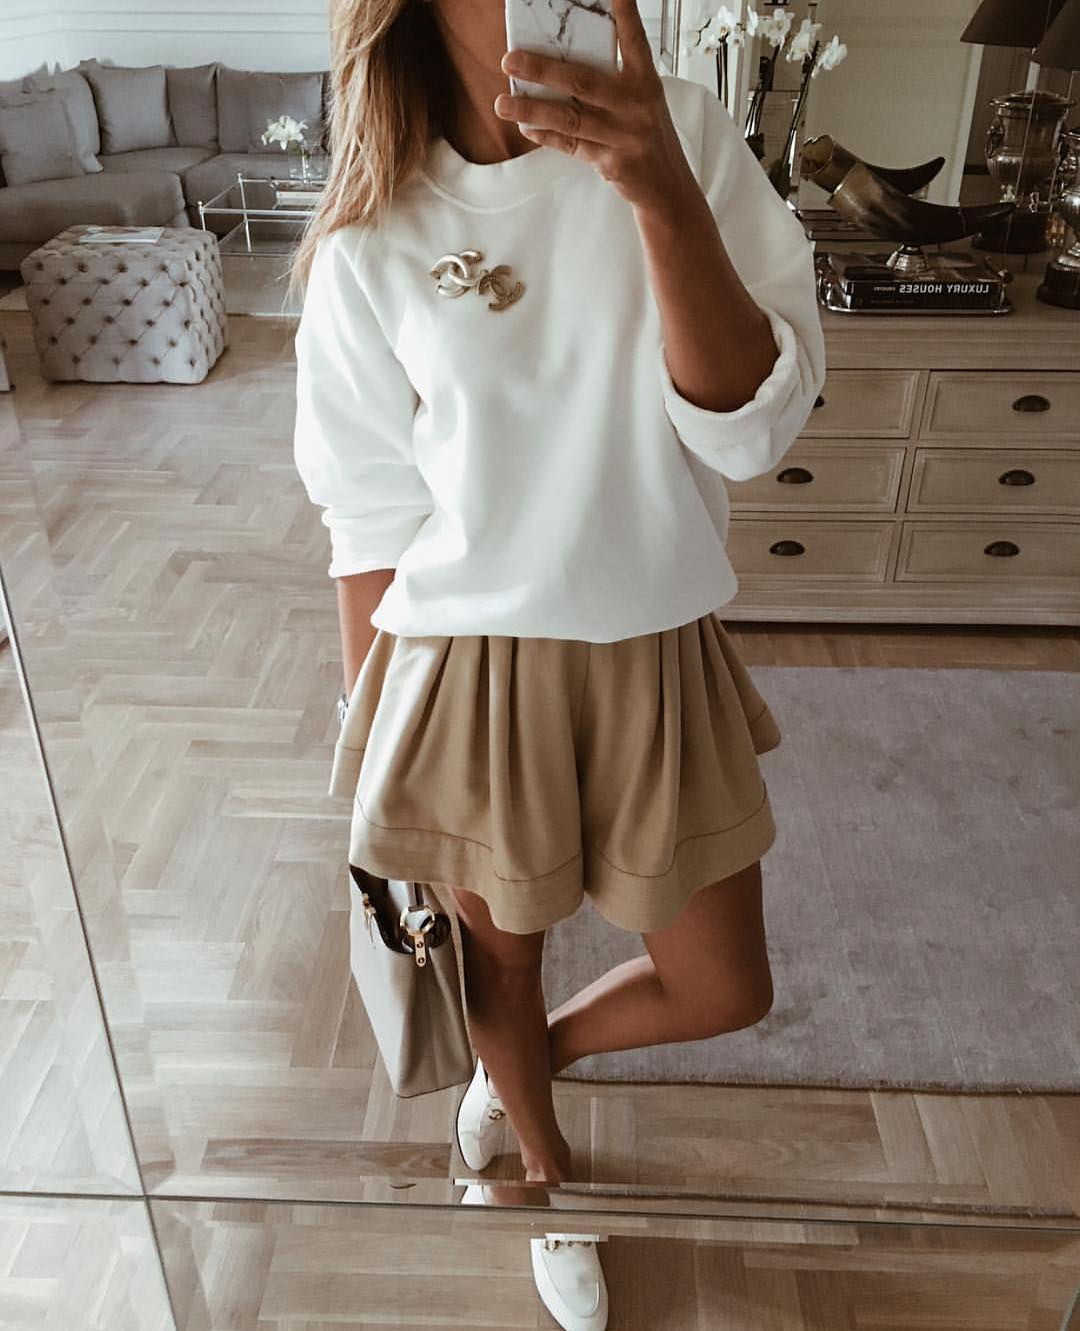 How To Wear Oversized White Sweater With Safari Flared Skirt For Summer 2019